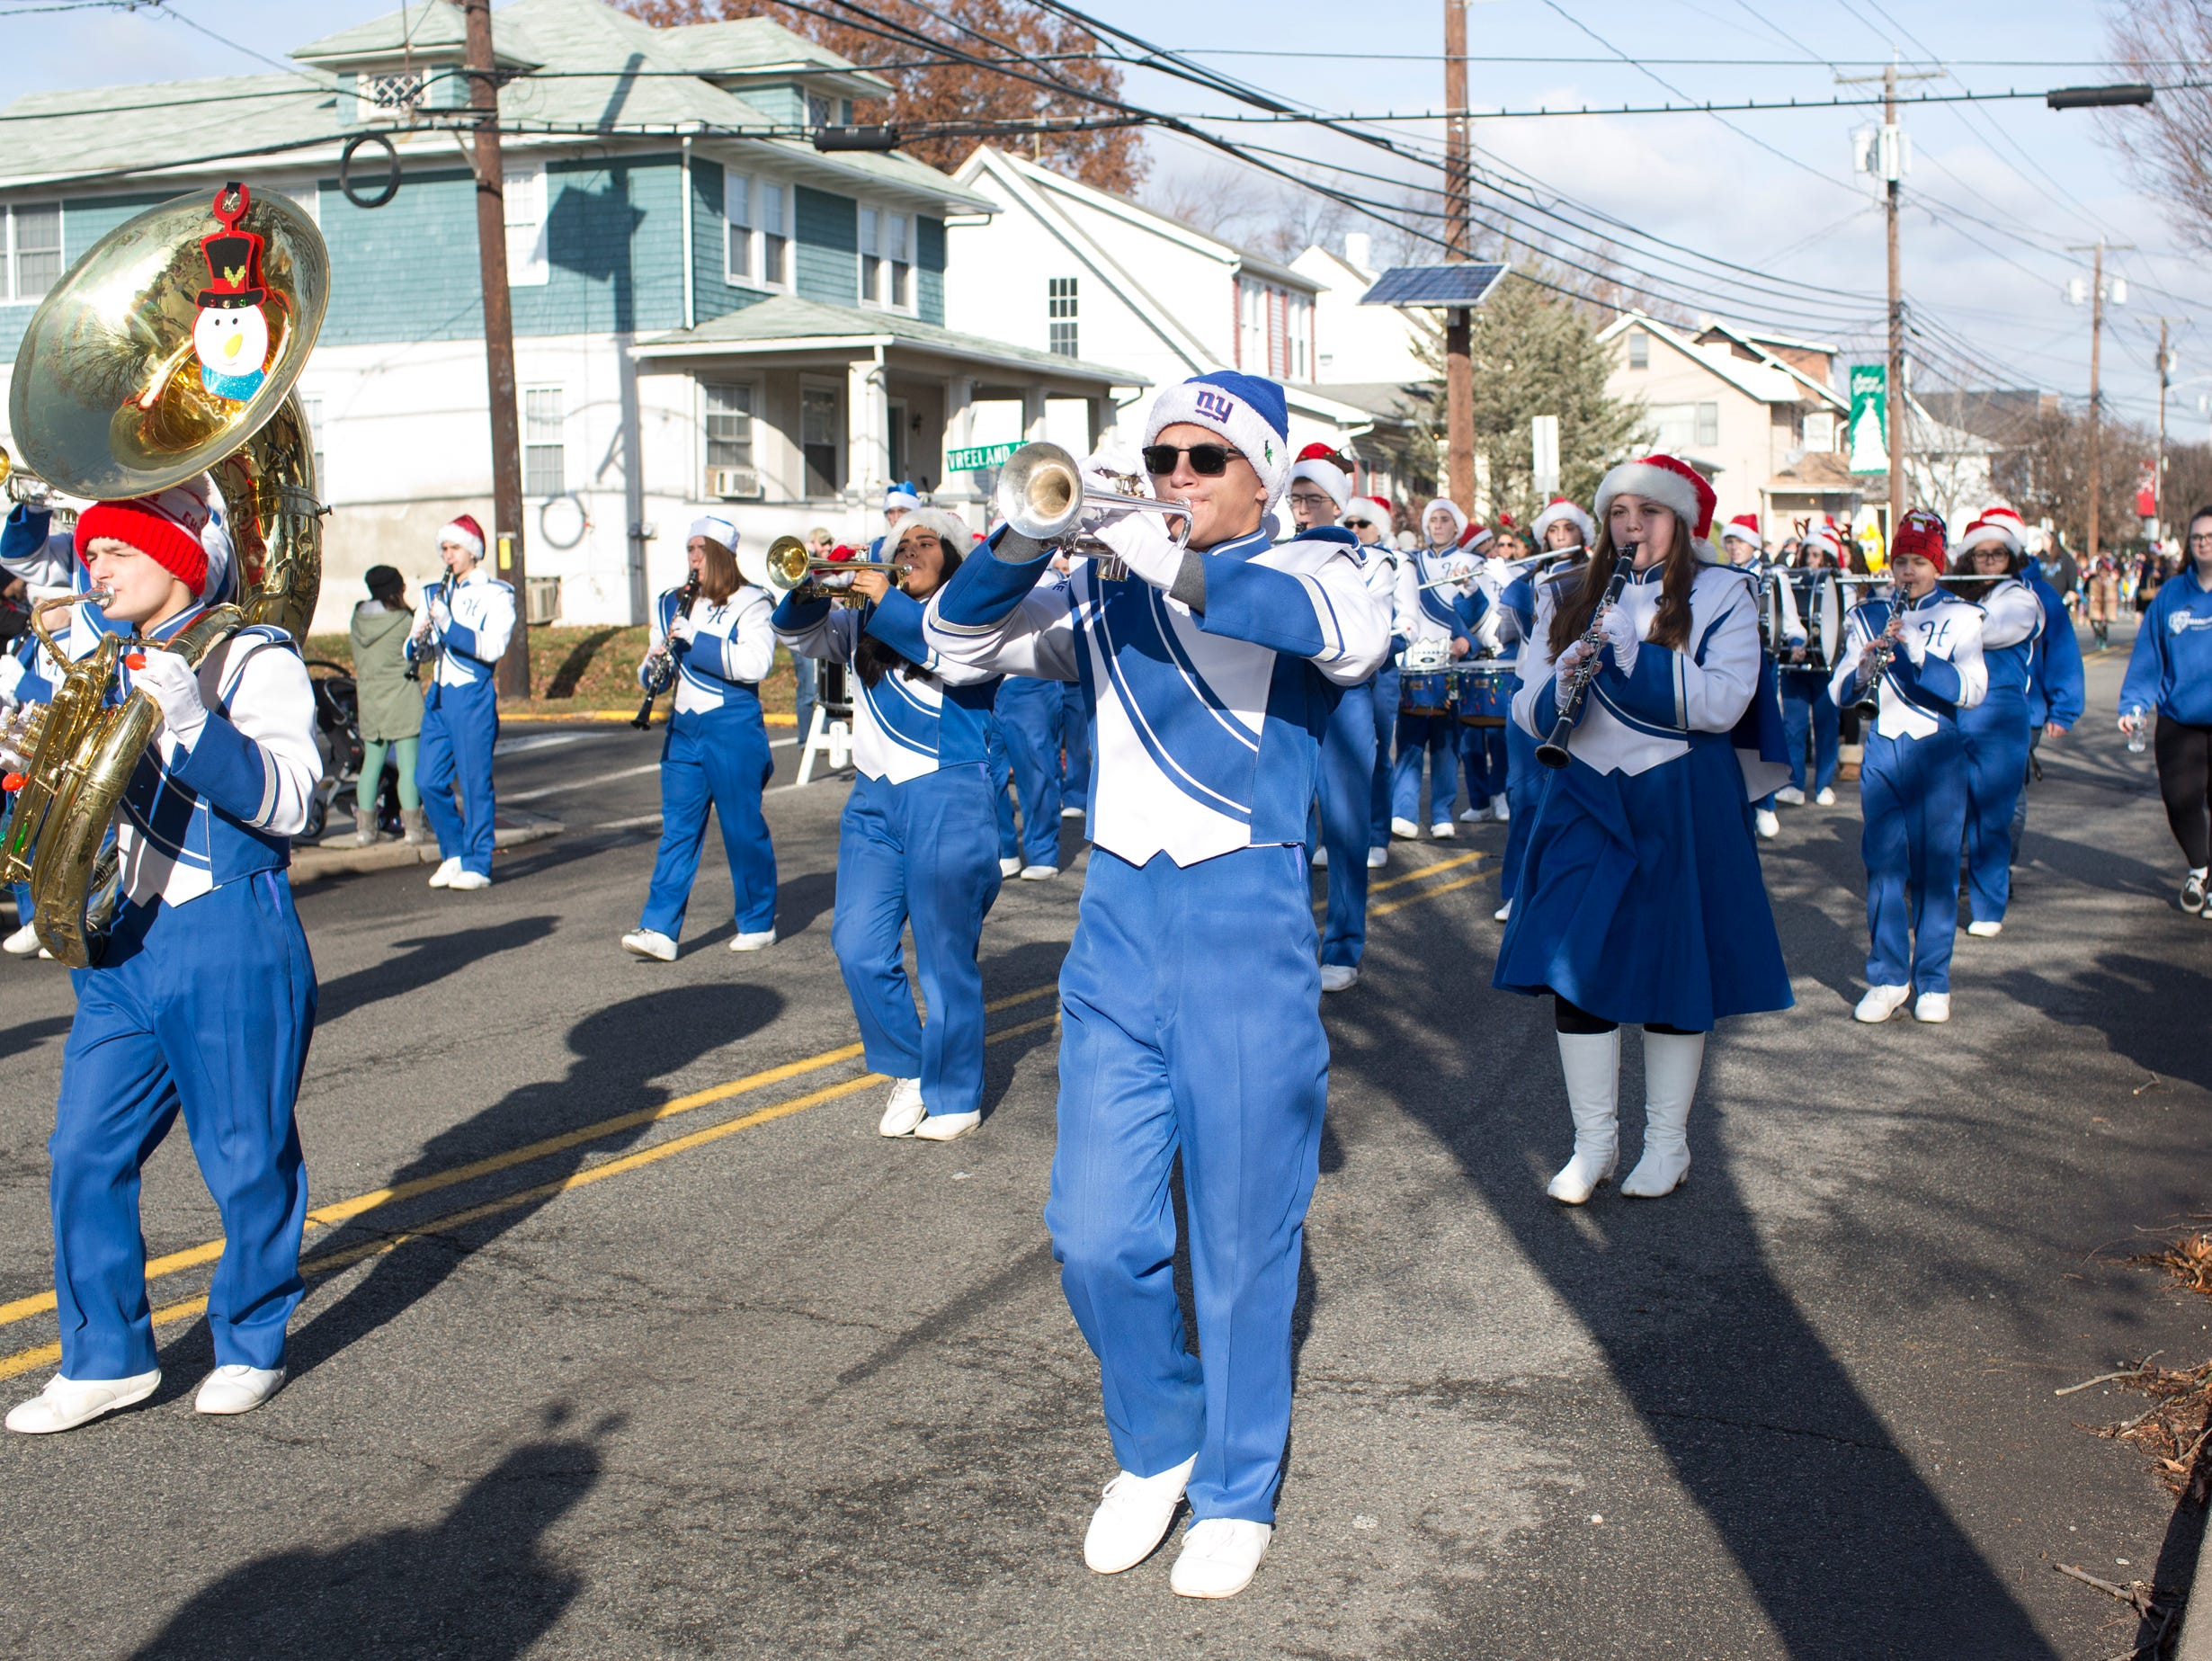 T.J. Marks (left) and Michael Rica (center) play together with the Hawthorne High School Marching Band on Lafayette Avenue during the 33rd Annual Santa Parade in Hawthorne on Saturday, Dec. 1, 2018.